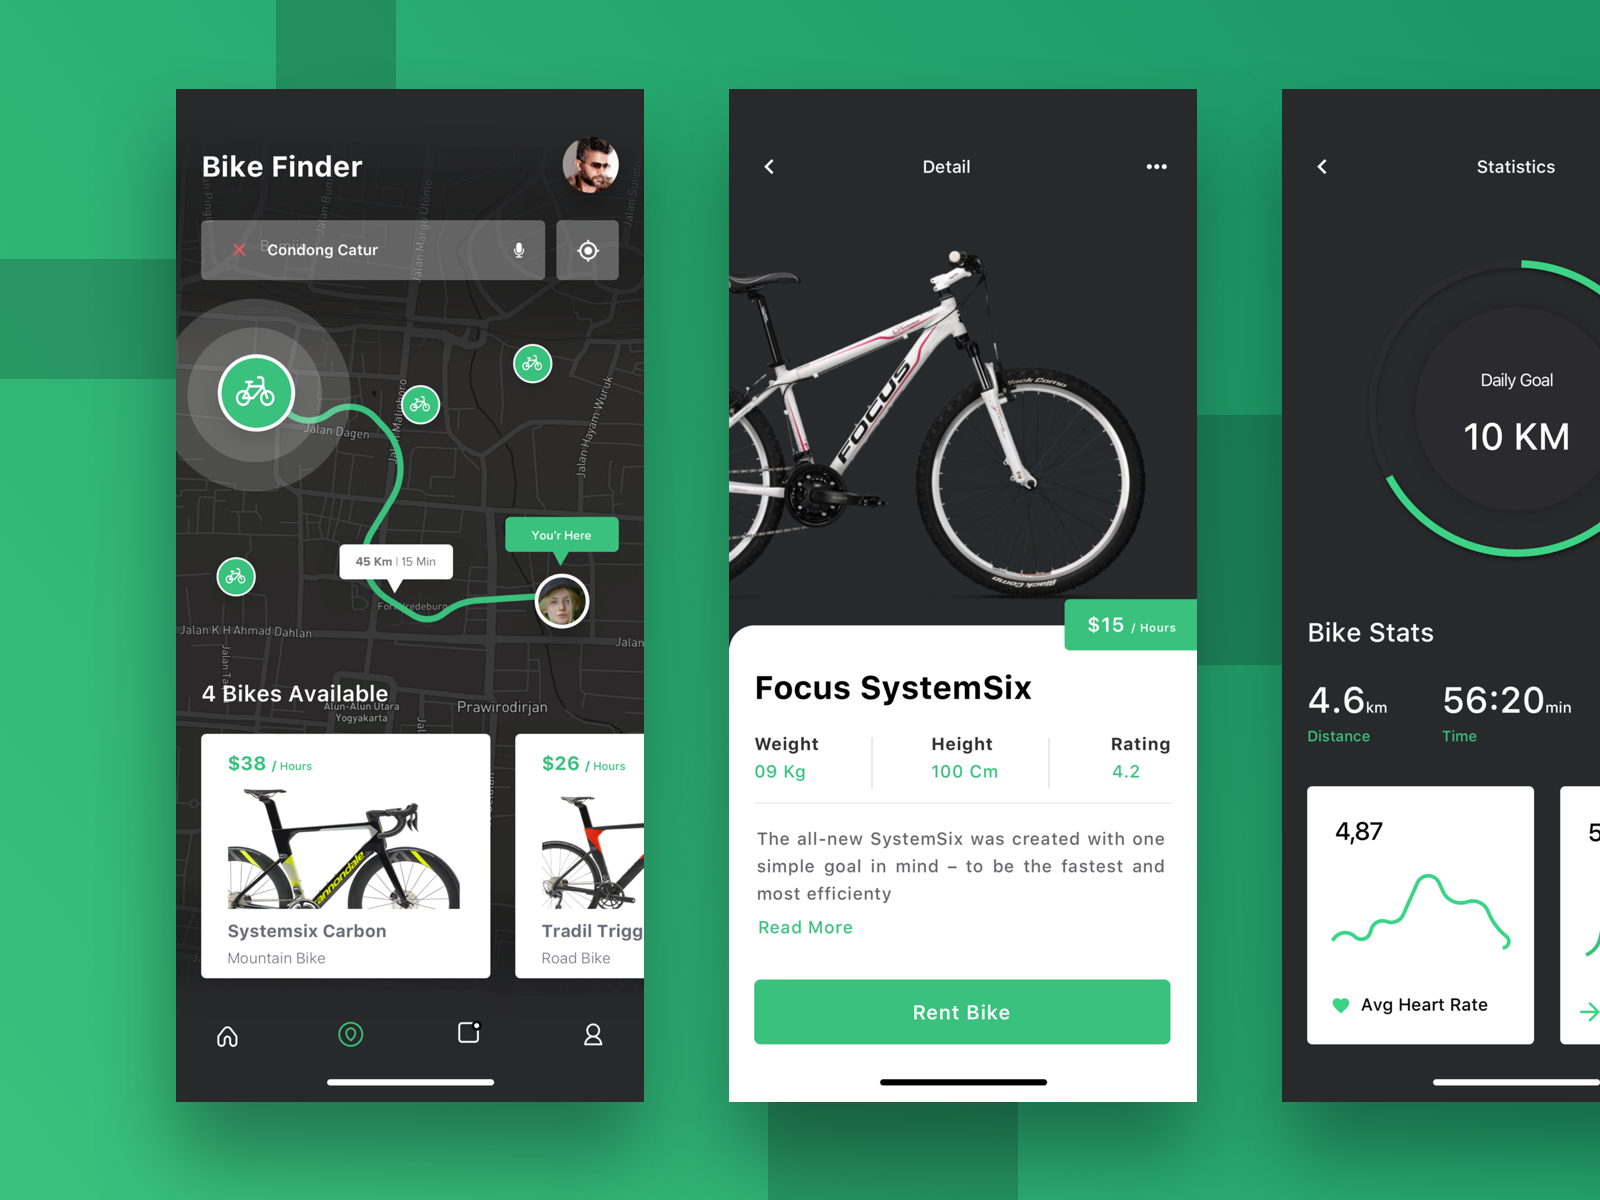 Sharing Bike App Biking Apps Mobile App Inspiration App Design